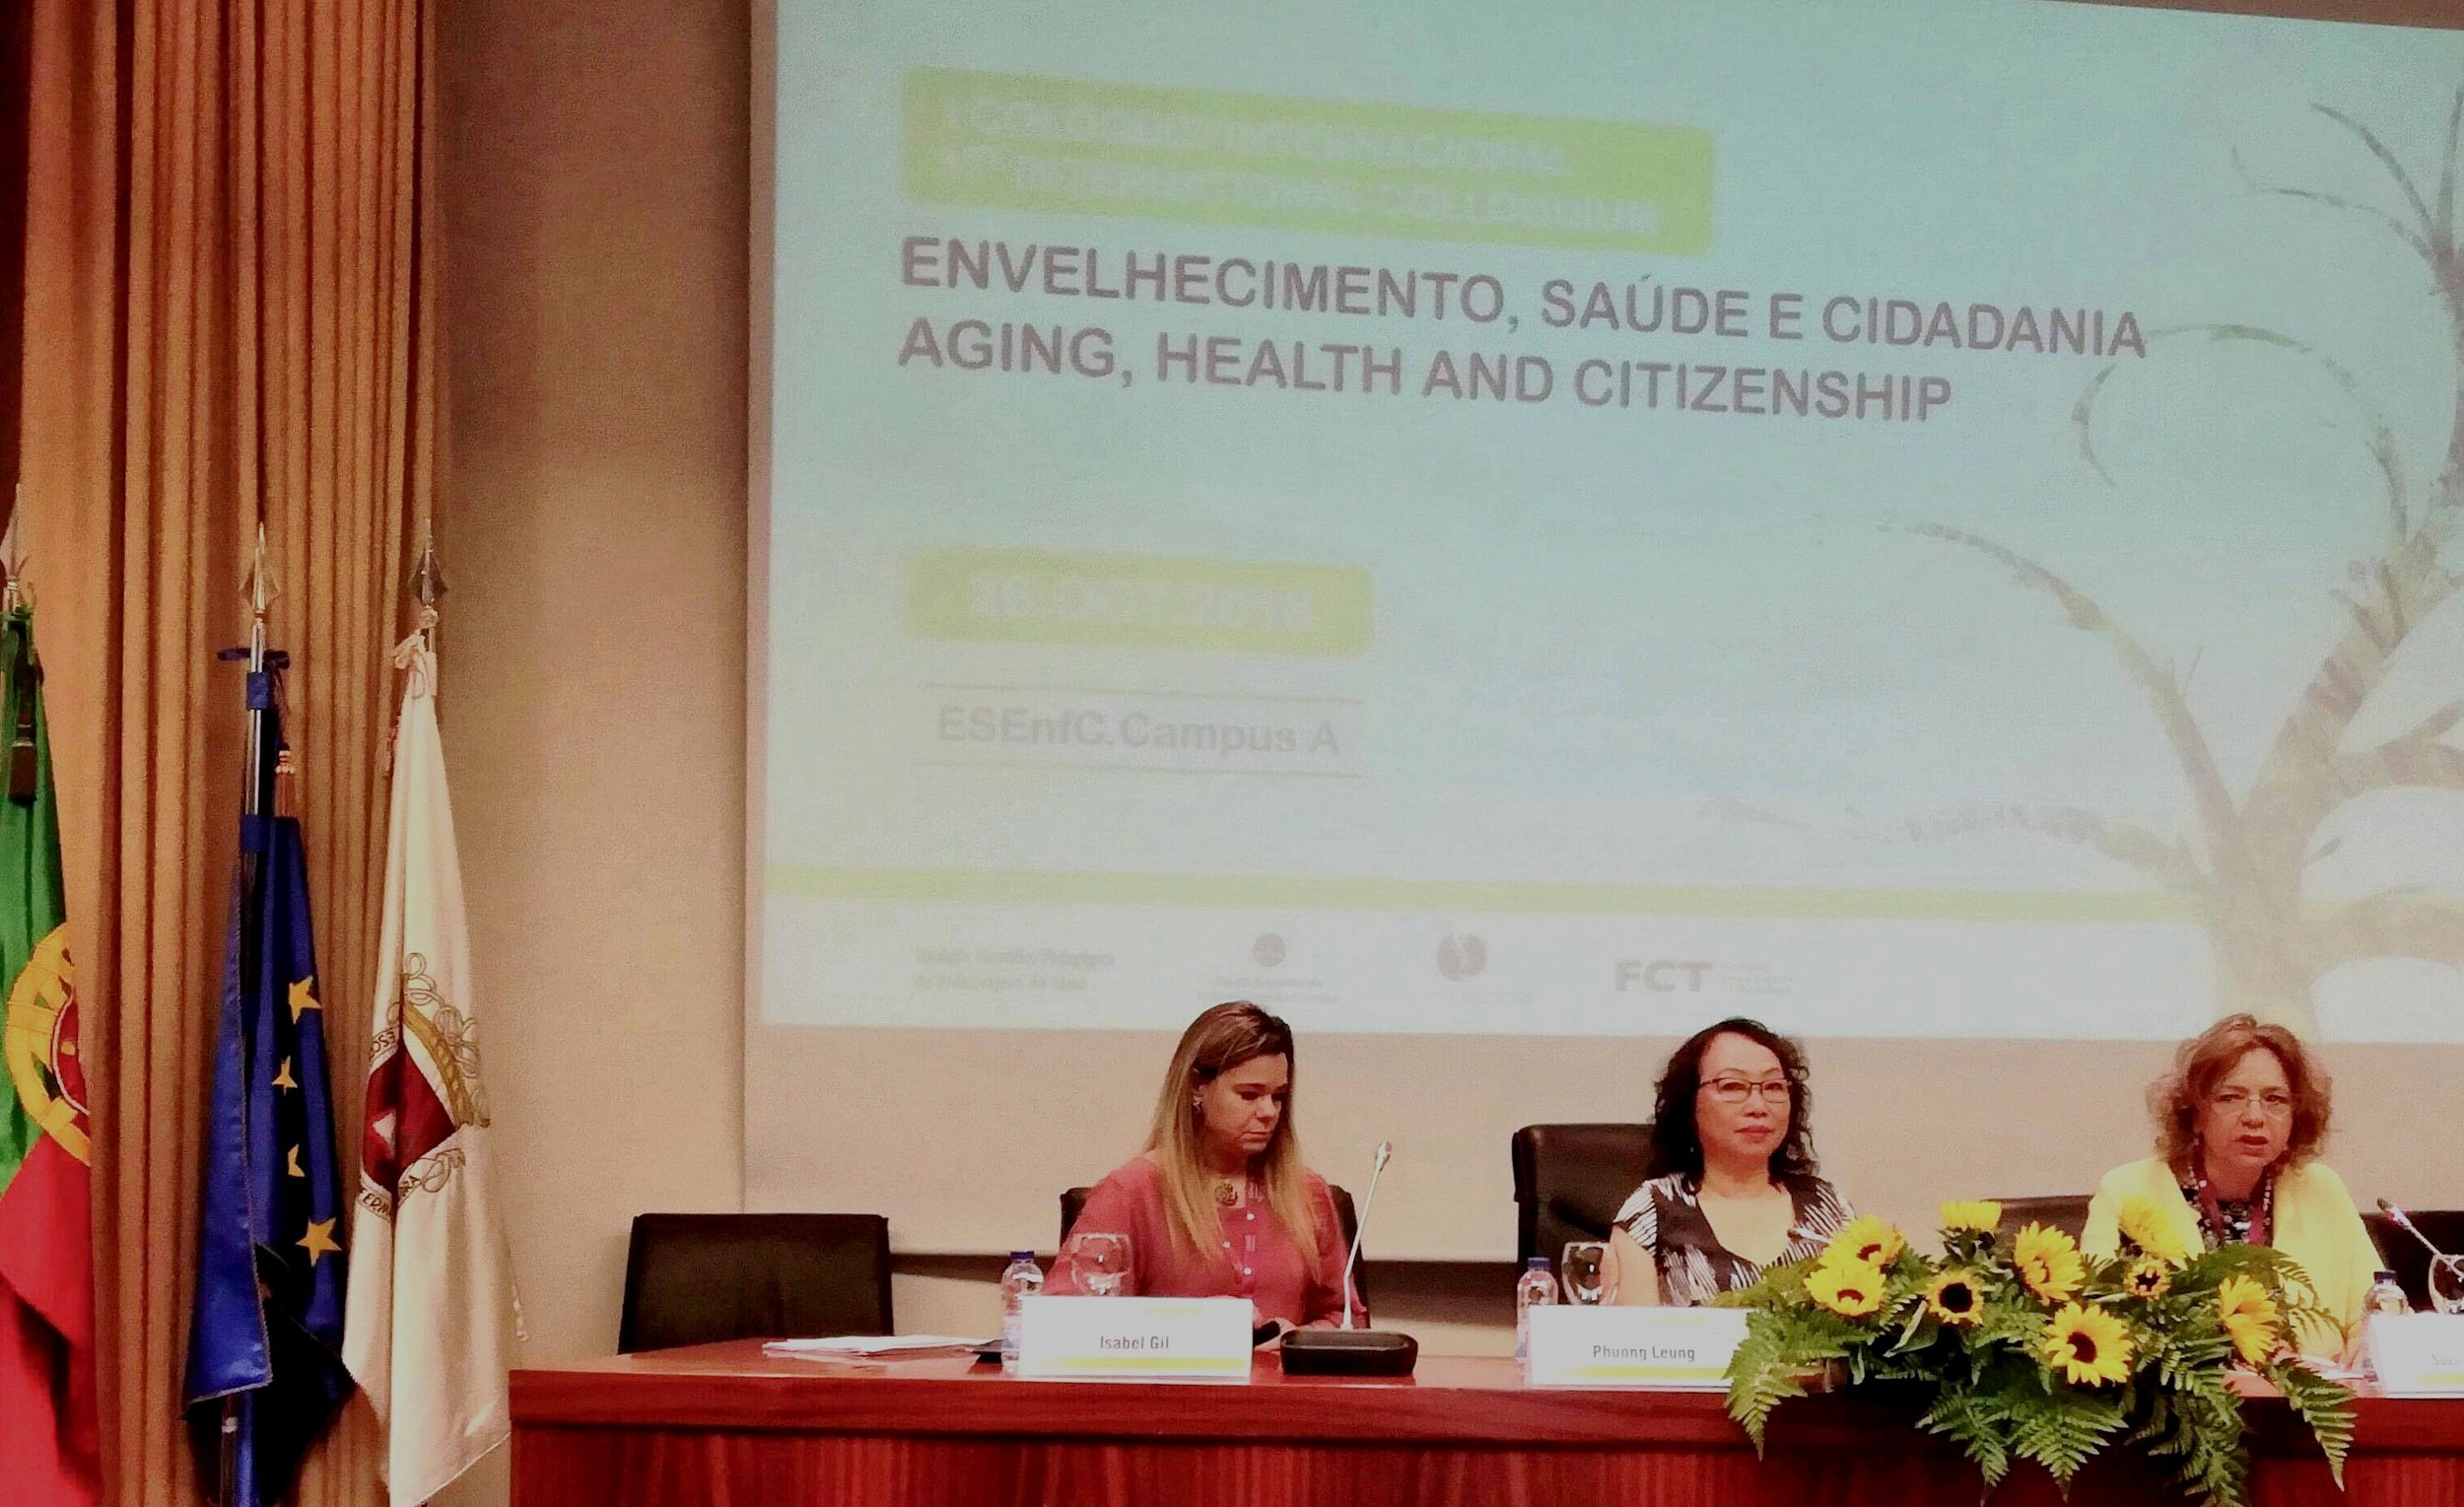 """1st International Colloquium """"Aging, Health and Citizenship"""" conference in Coimbra Portugal"""